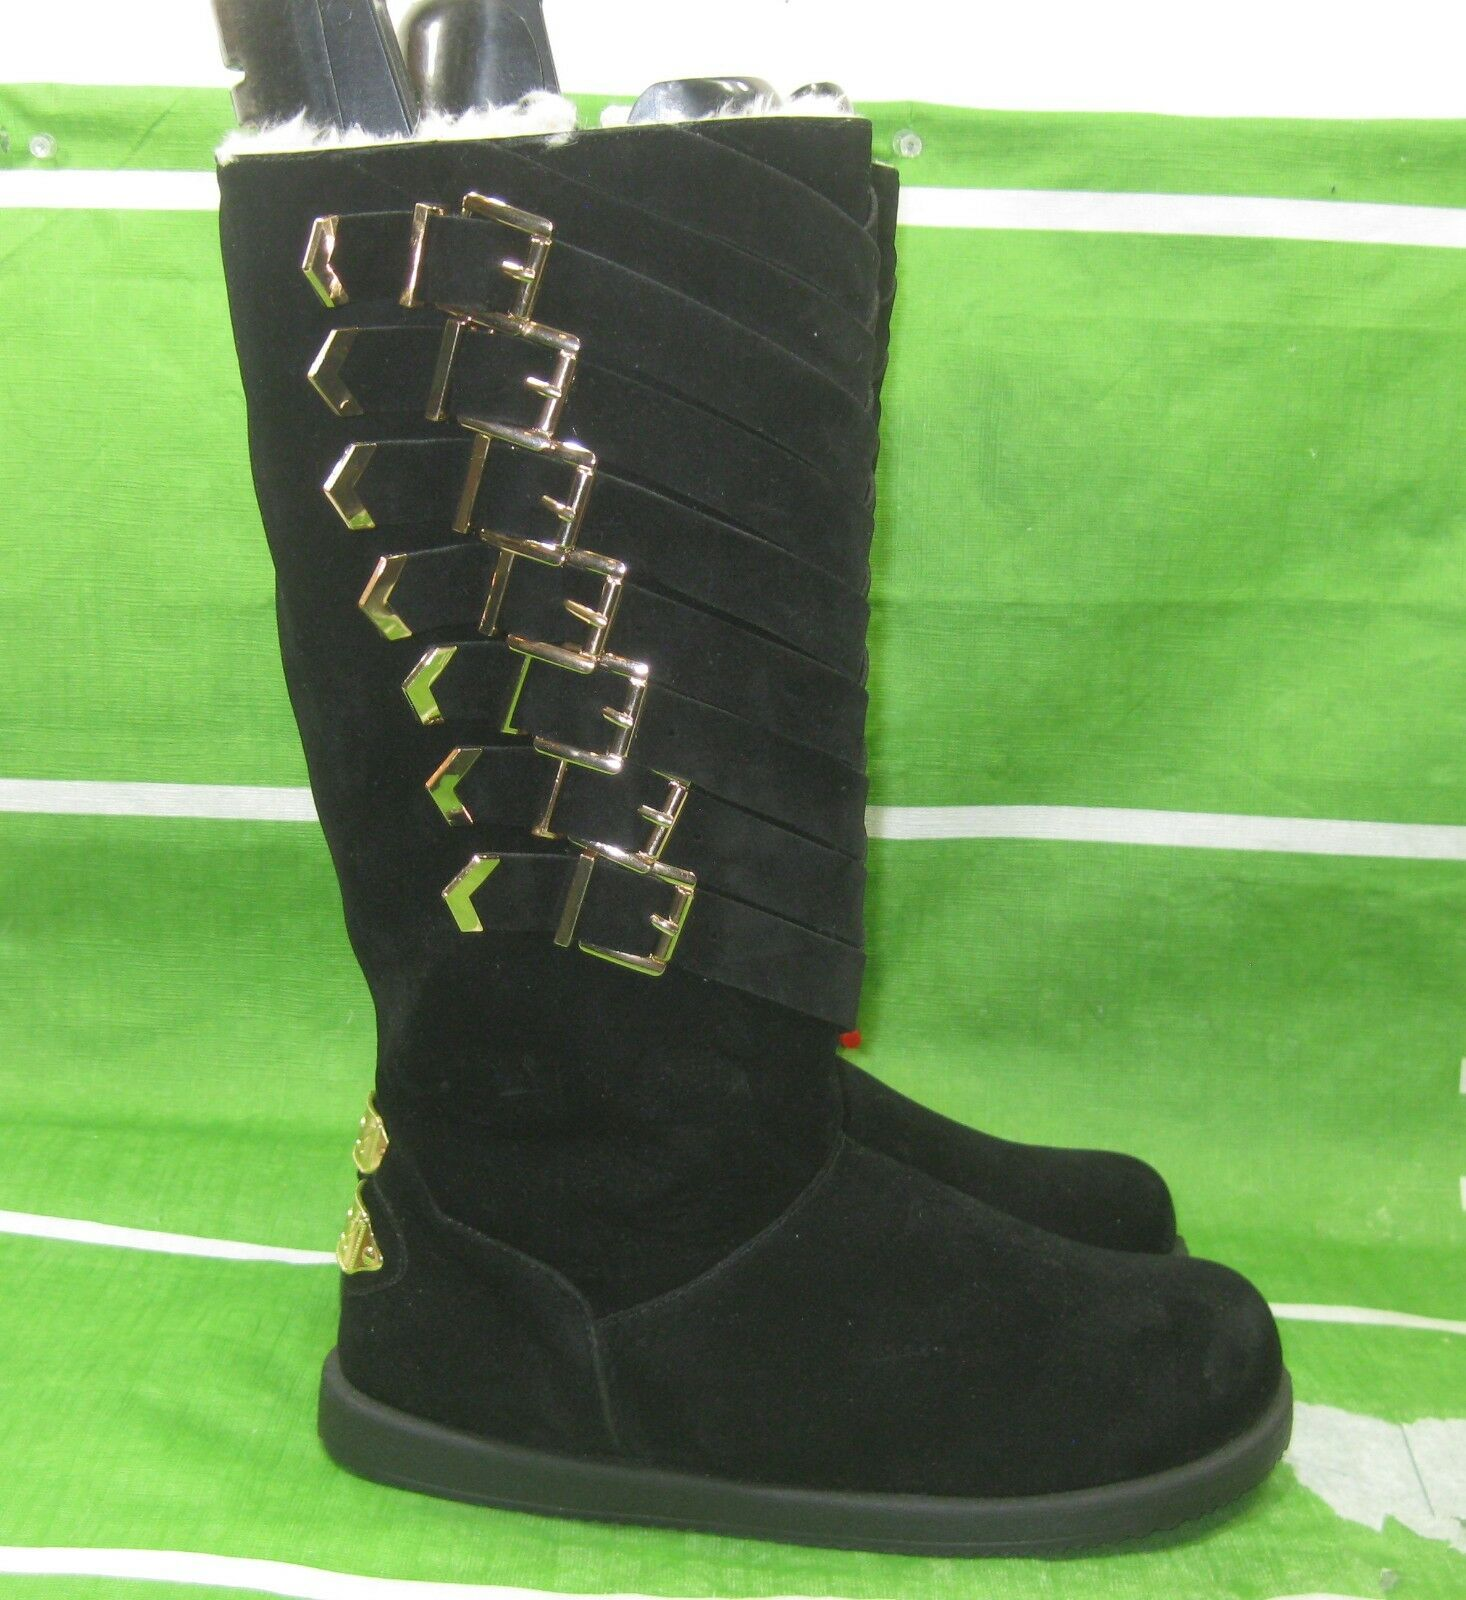 New ladies Black gold Buckle Round Toe  Winter Mid-Calf Boot Size 9.5